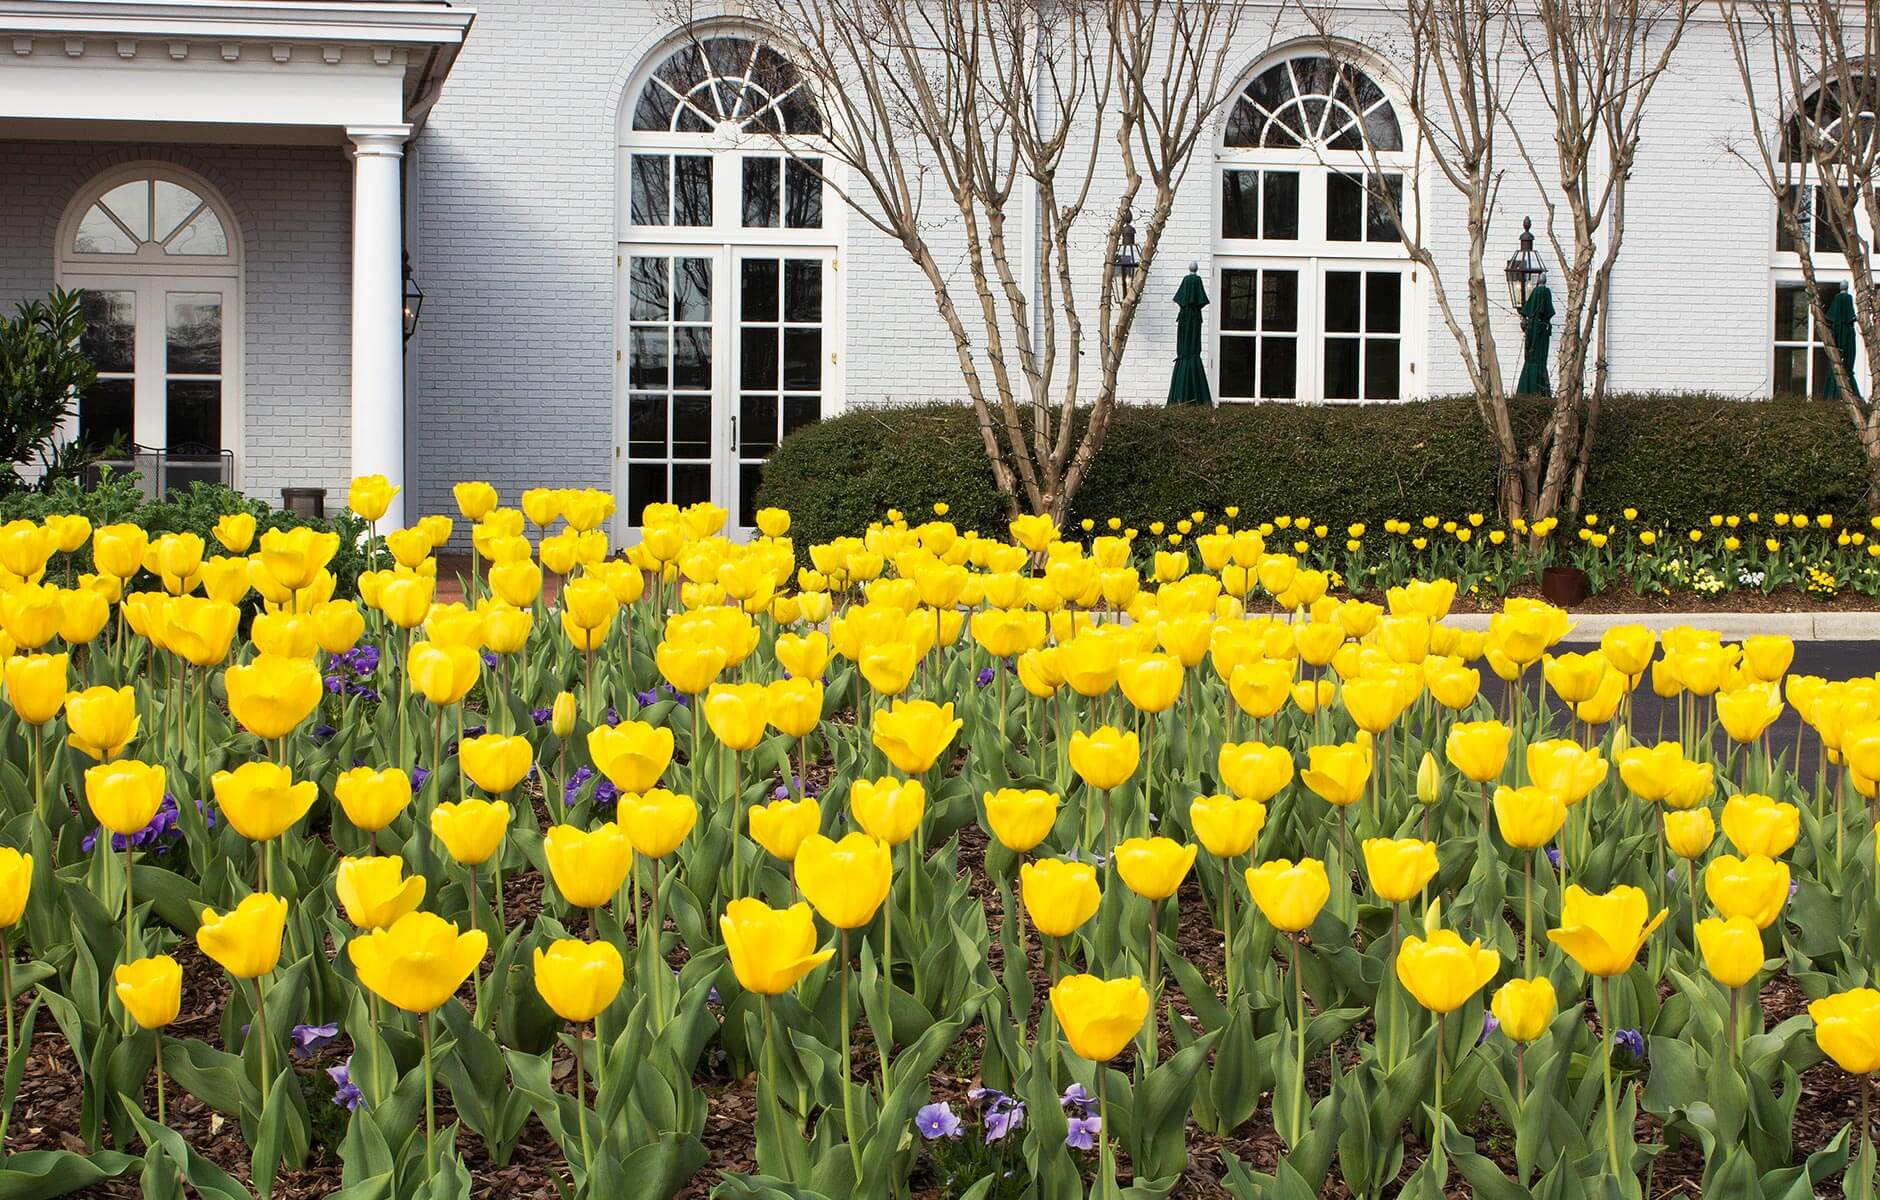 Beautiful yellow tulips in large flower beds